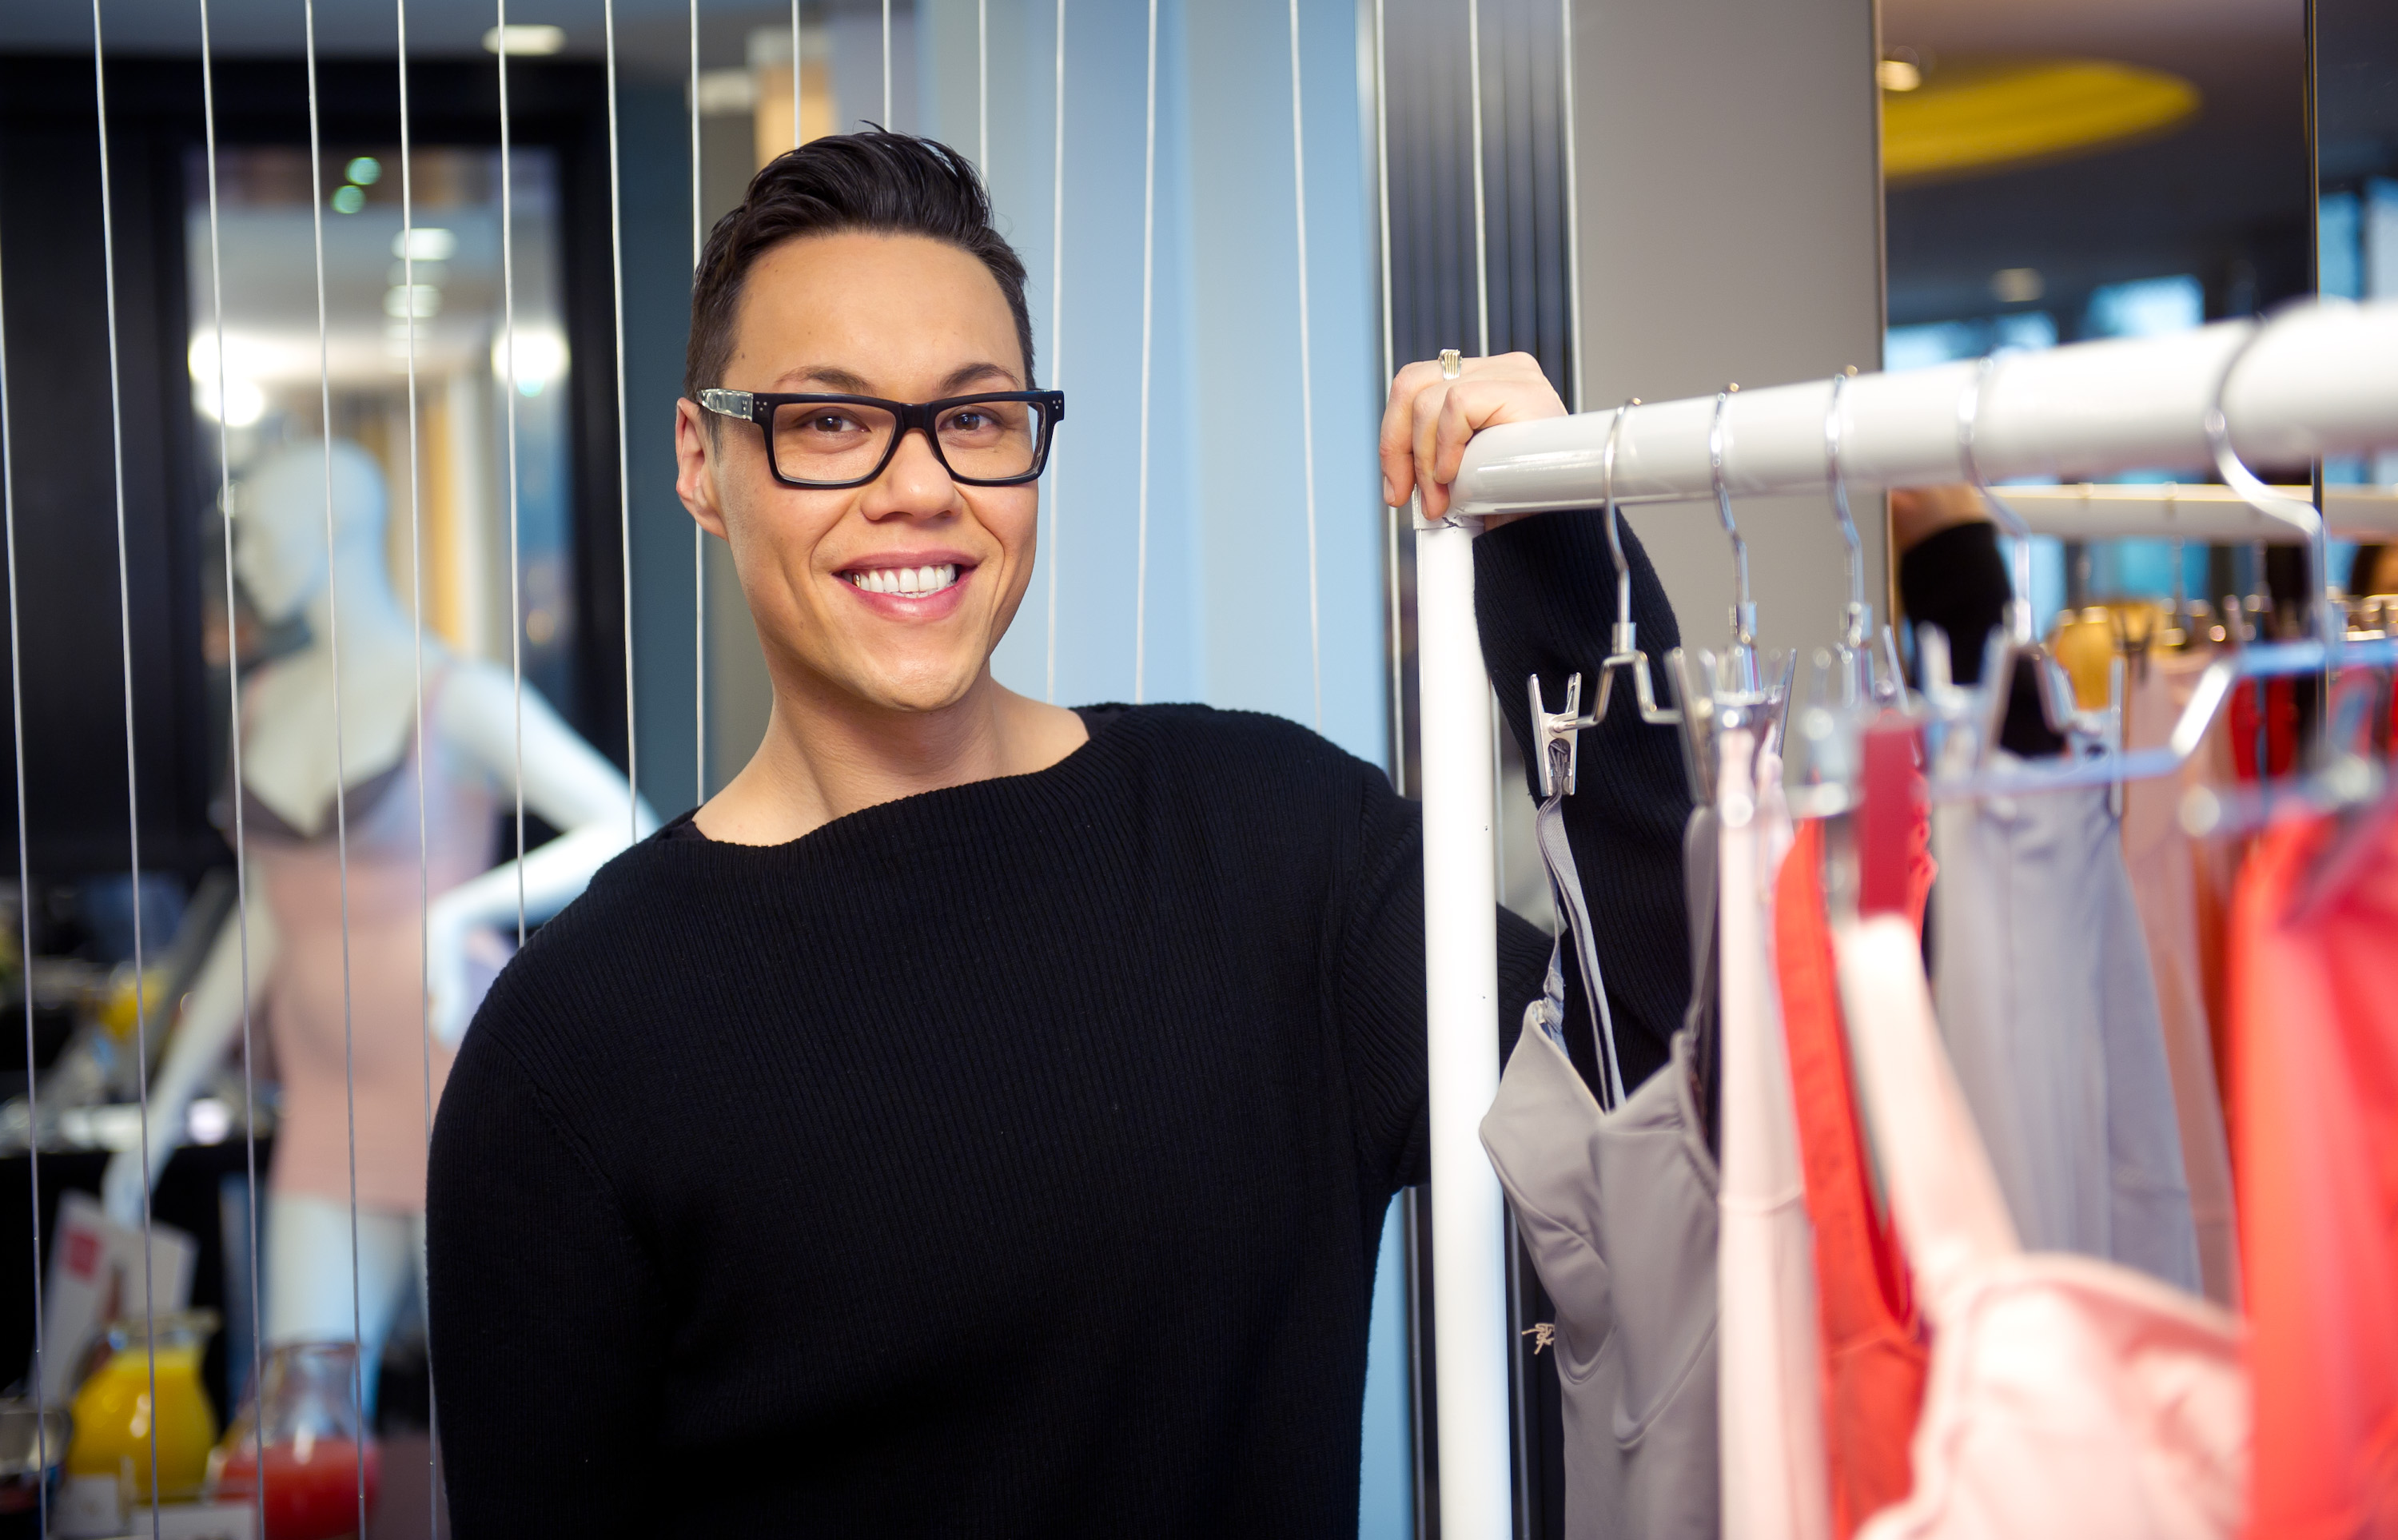 How old is Gok Wan, is he married and what is his net worth as he appears on This Morning?